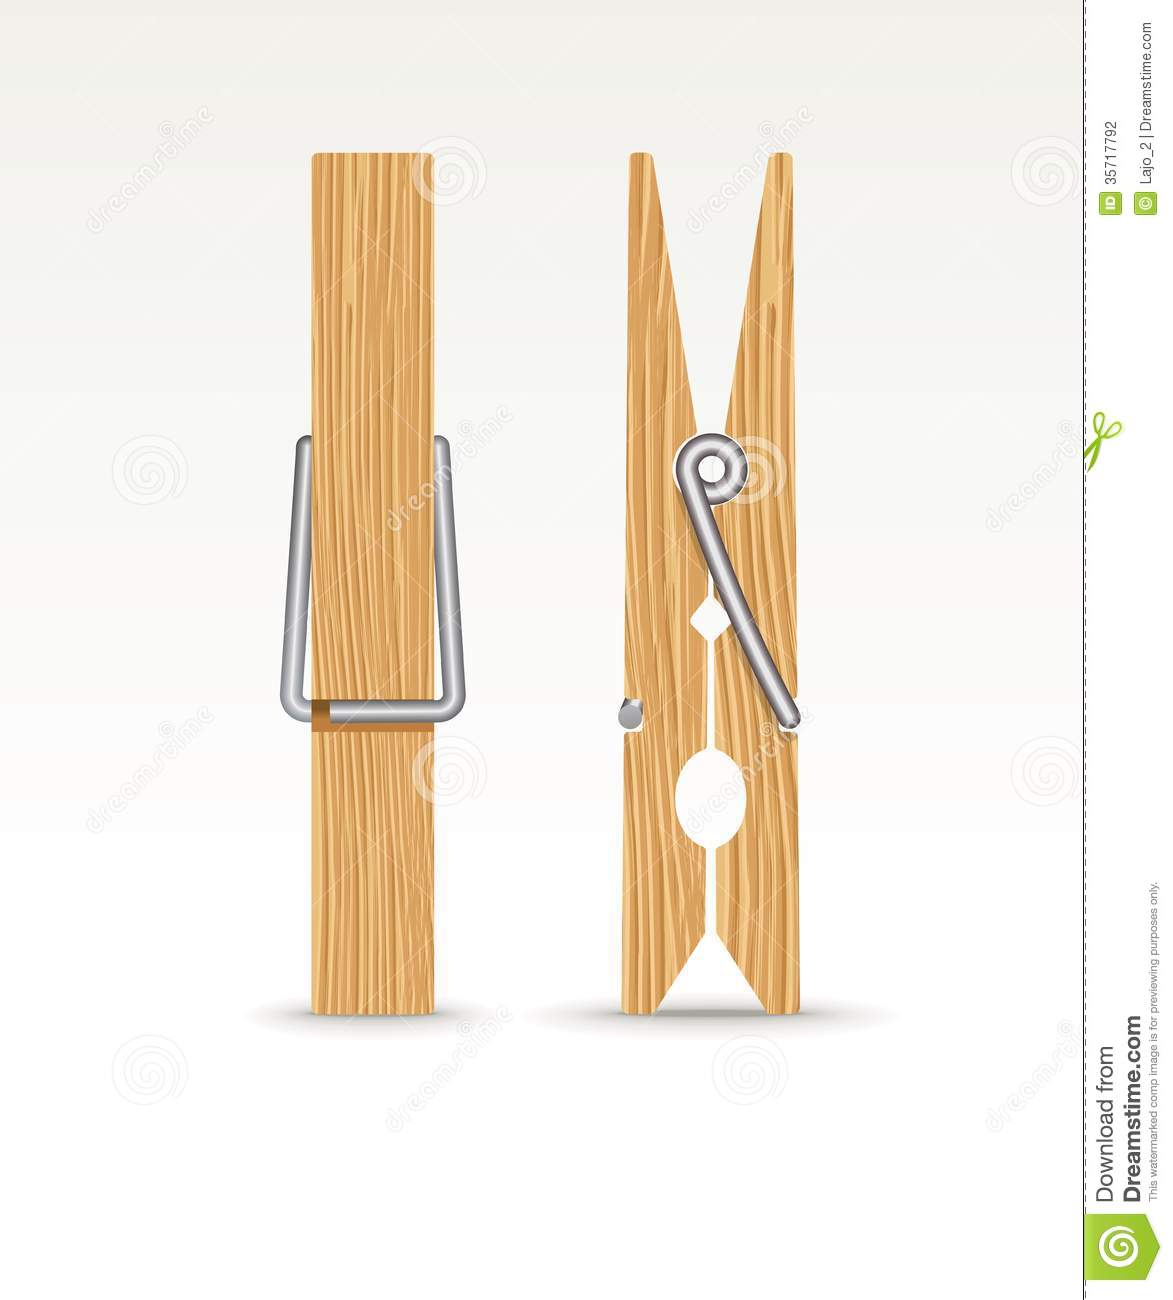 Wooden Cloth Clips Stock Photography - Image: 35717792